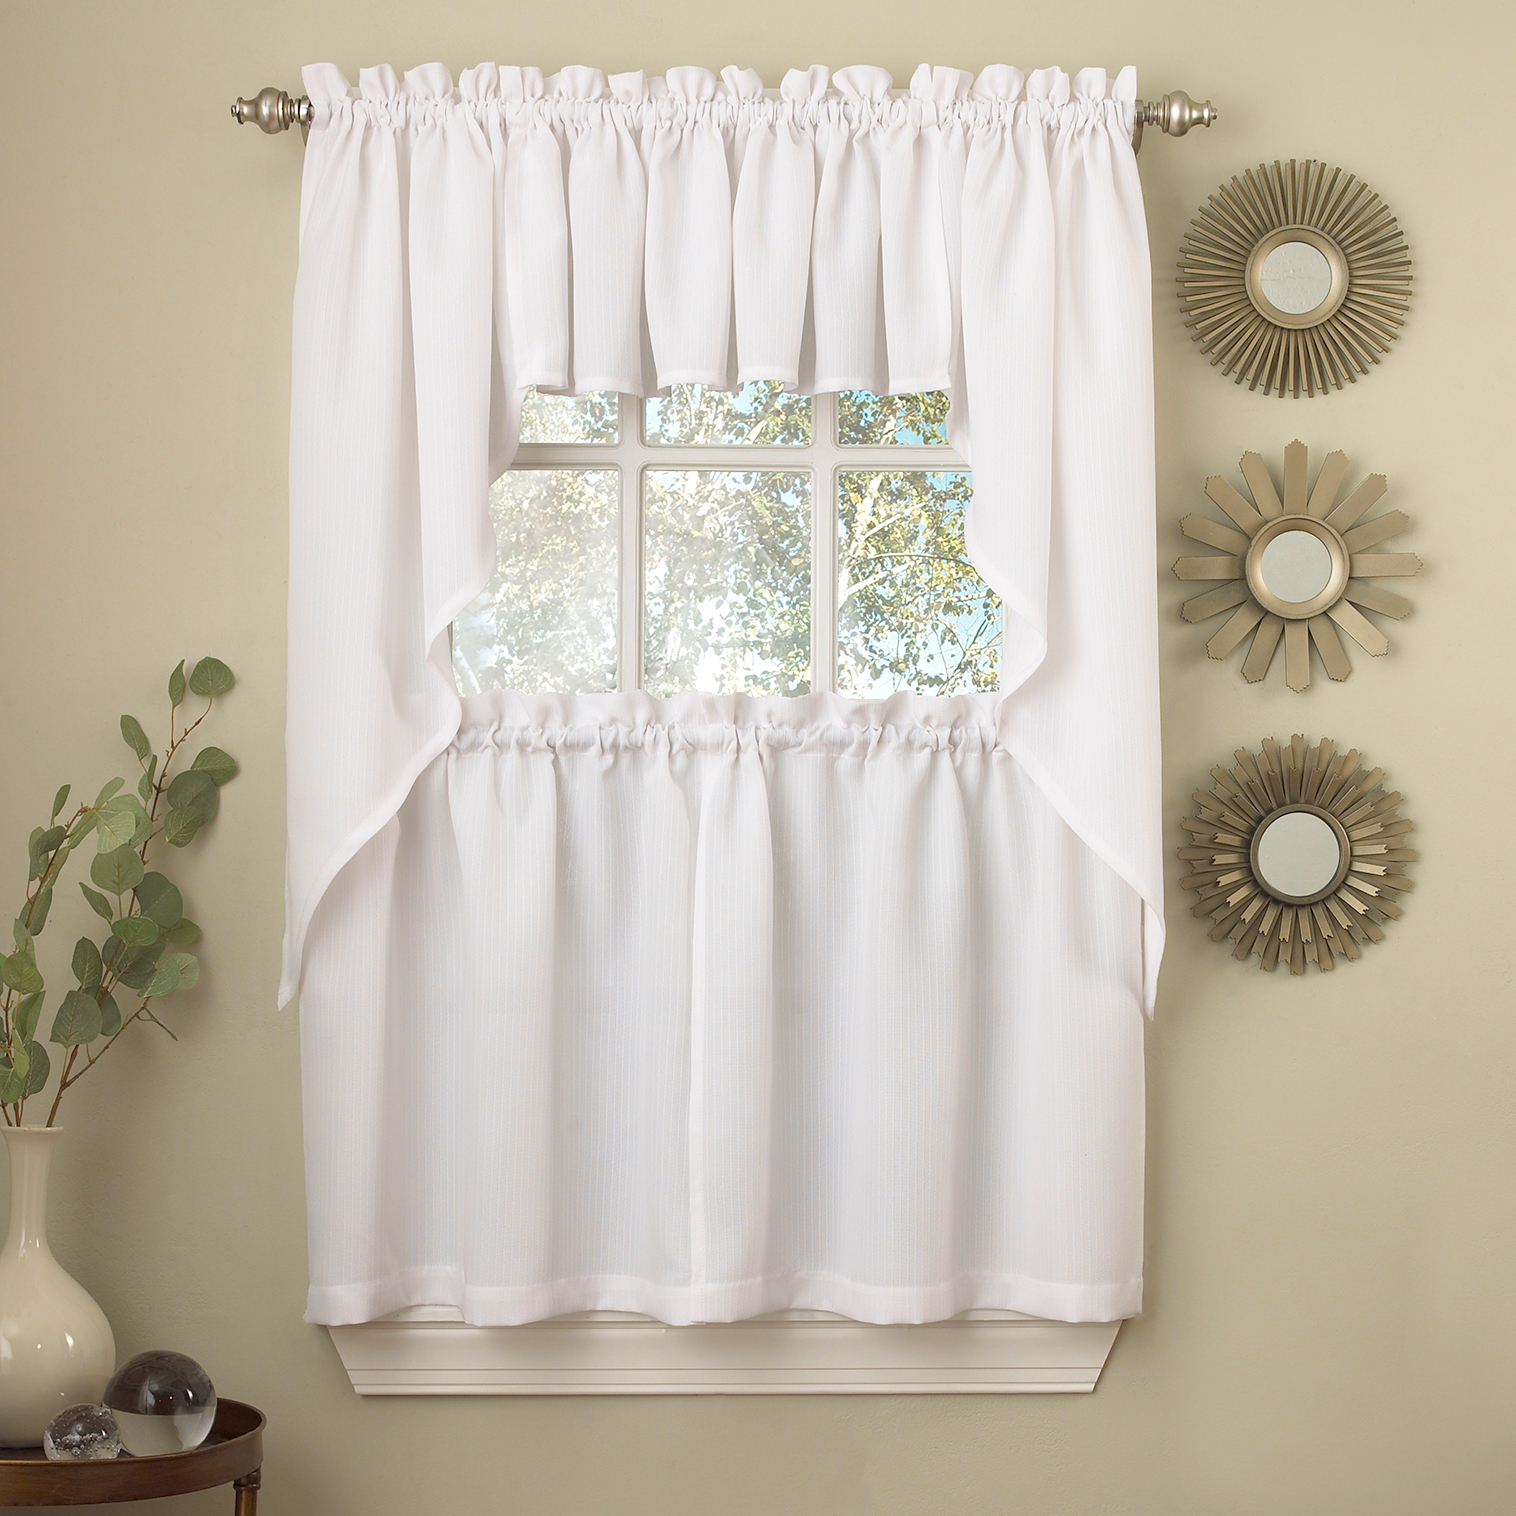 Details About White Solid Opaque Ribcord Kitchen Curtains – Choice Of Tiers Valance Or Swag With Regard To Cotton Blend Ivy Floral Tier Curtain And Swag Sets (View 14 of 20)